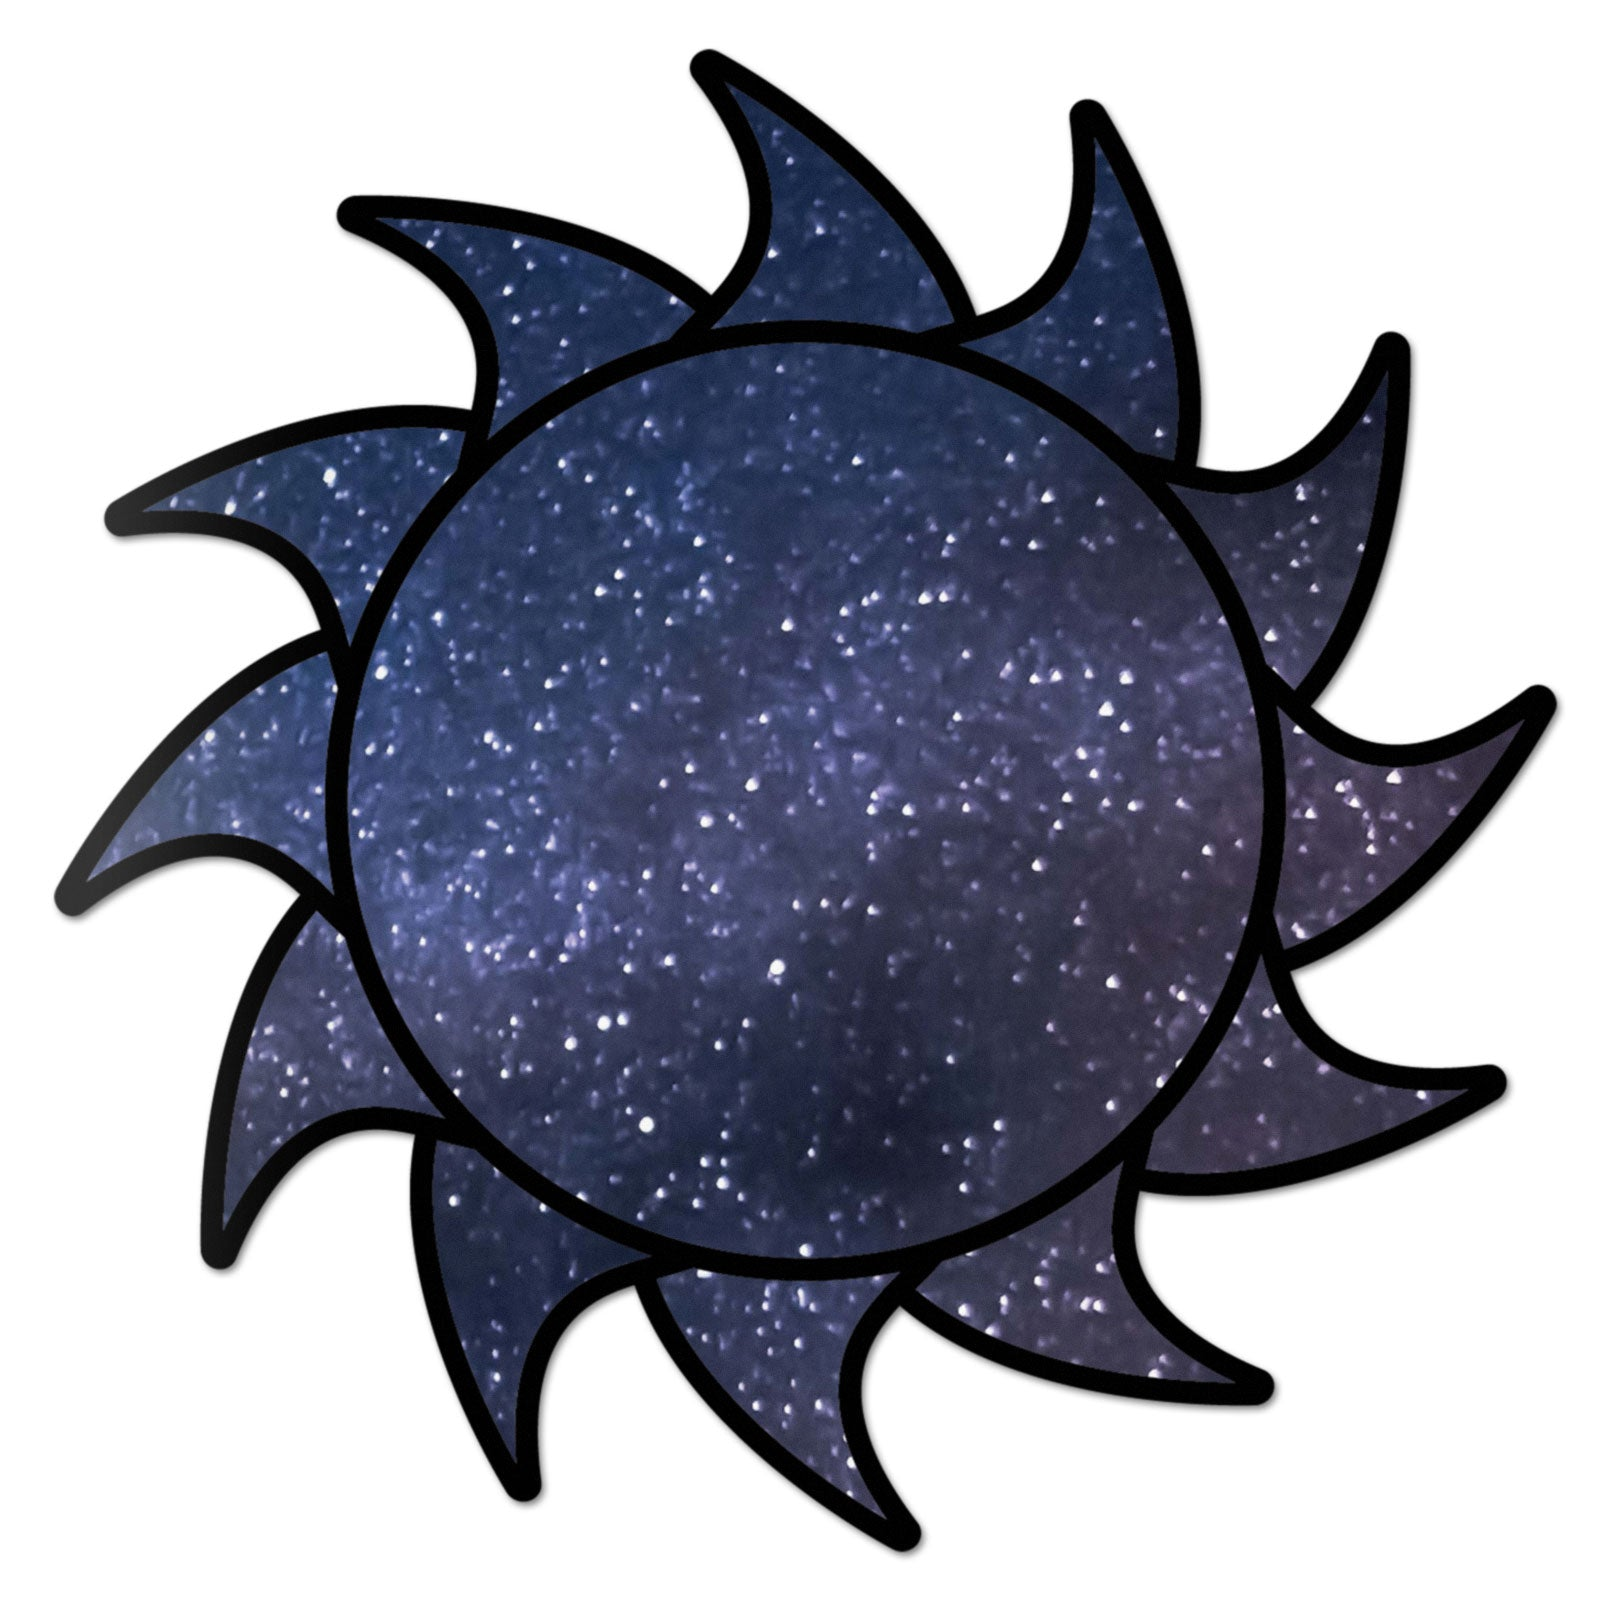 Sun Decal Space Sticker Vinyl Rear Window Car Truck Large Sun Solar Wall Water and Fade Resistant 6 Inches